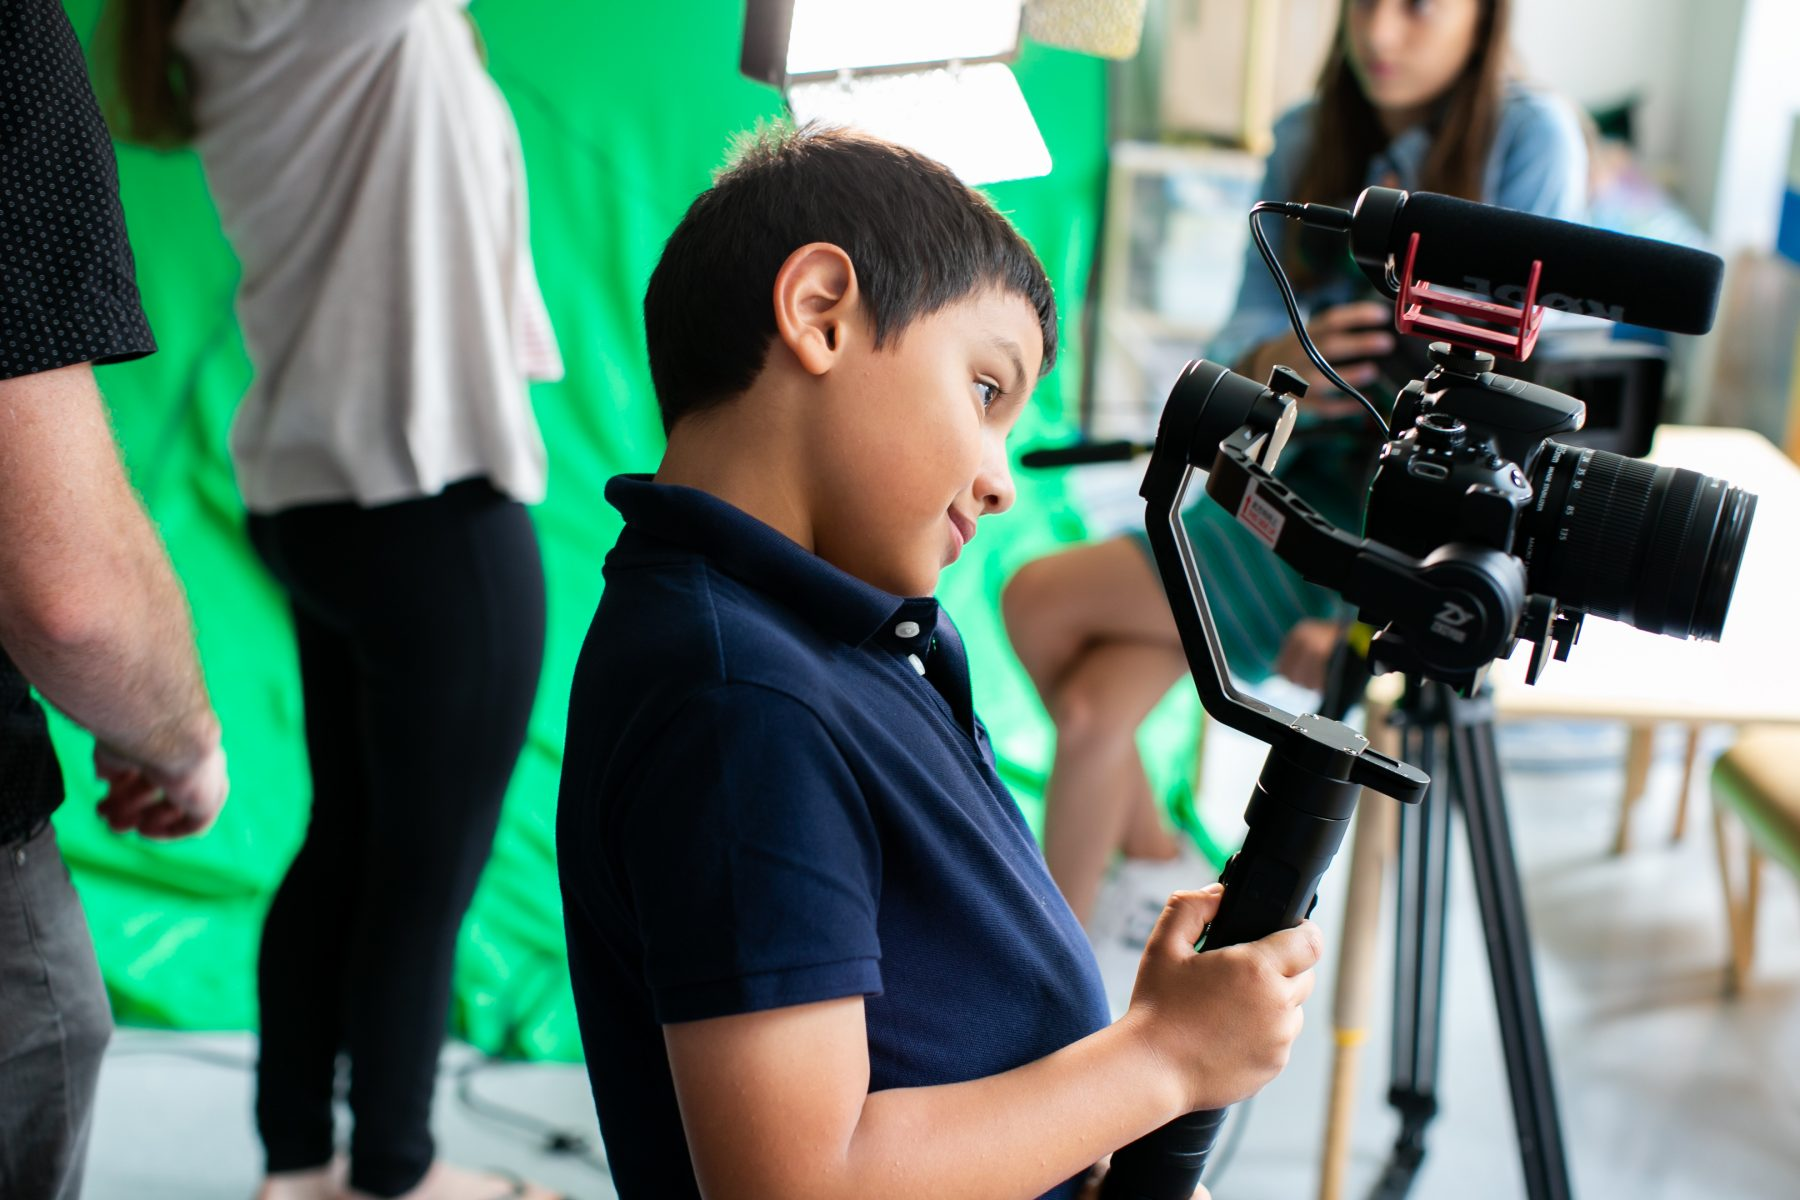 Movie Making at Home With Take Two Film Academy